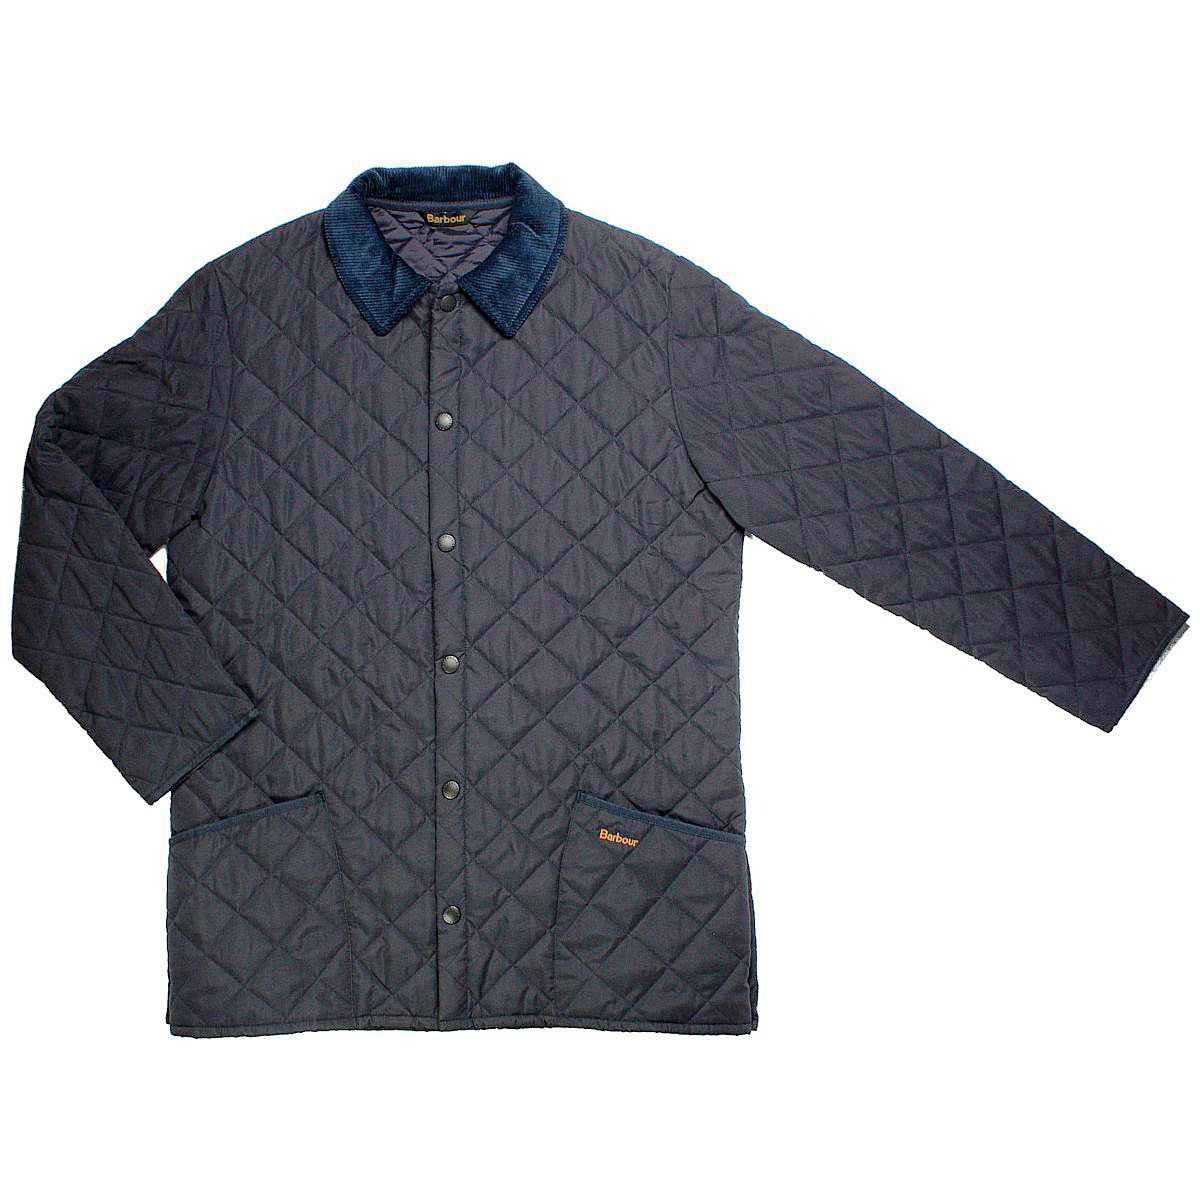 Barbour Eskdale - Herrensteppjacke